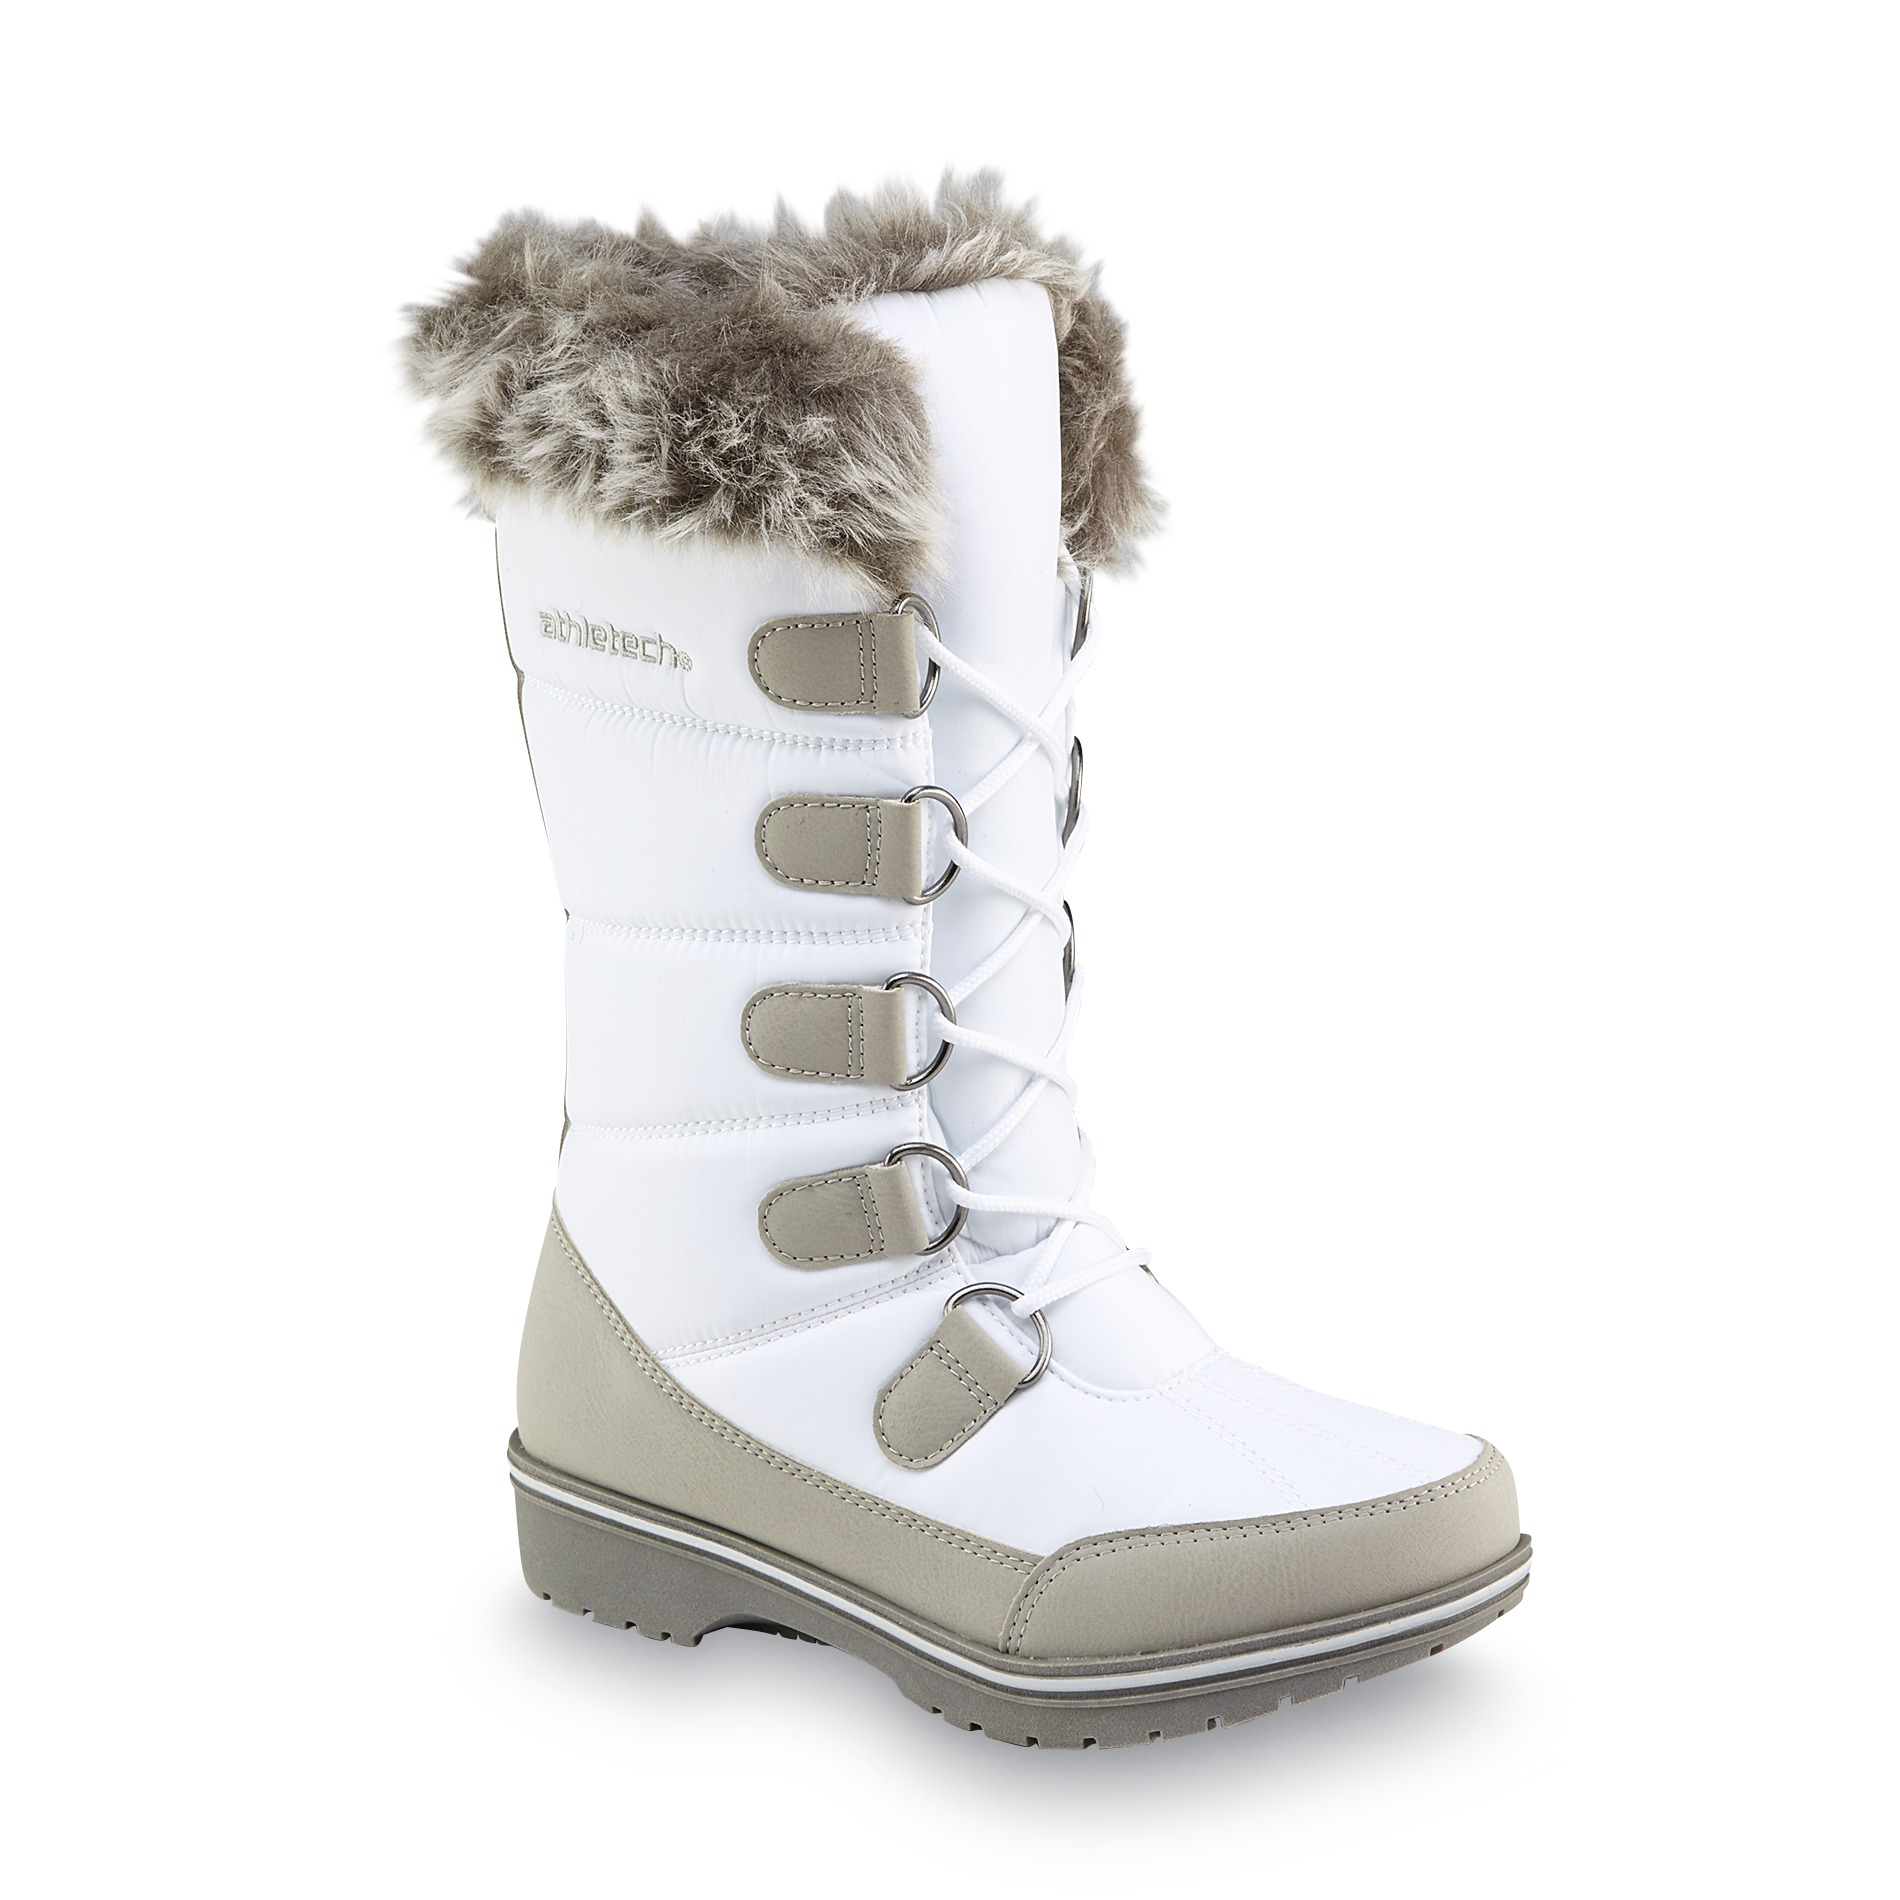 White Womens Snow Boots - Boot Yc